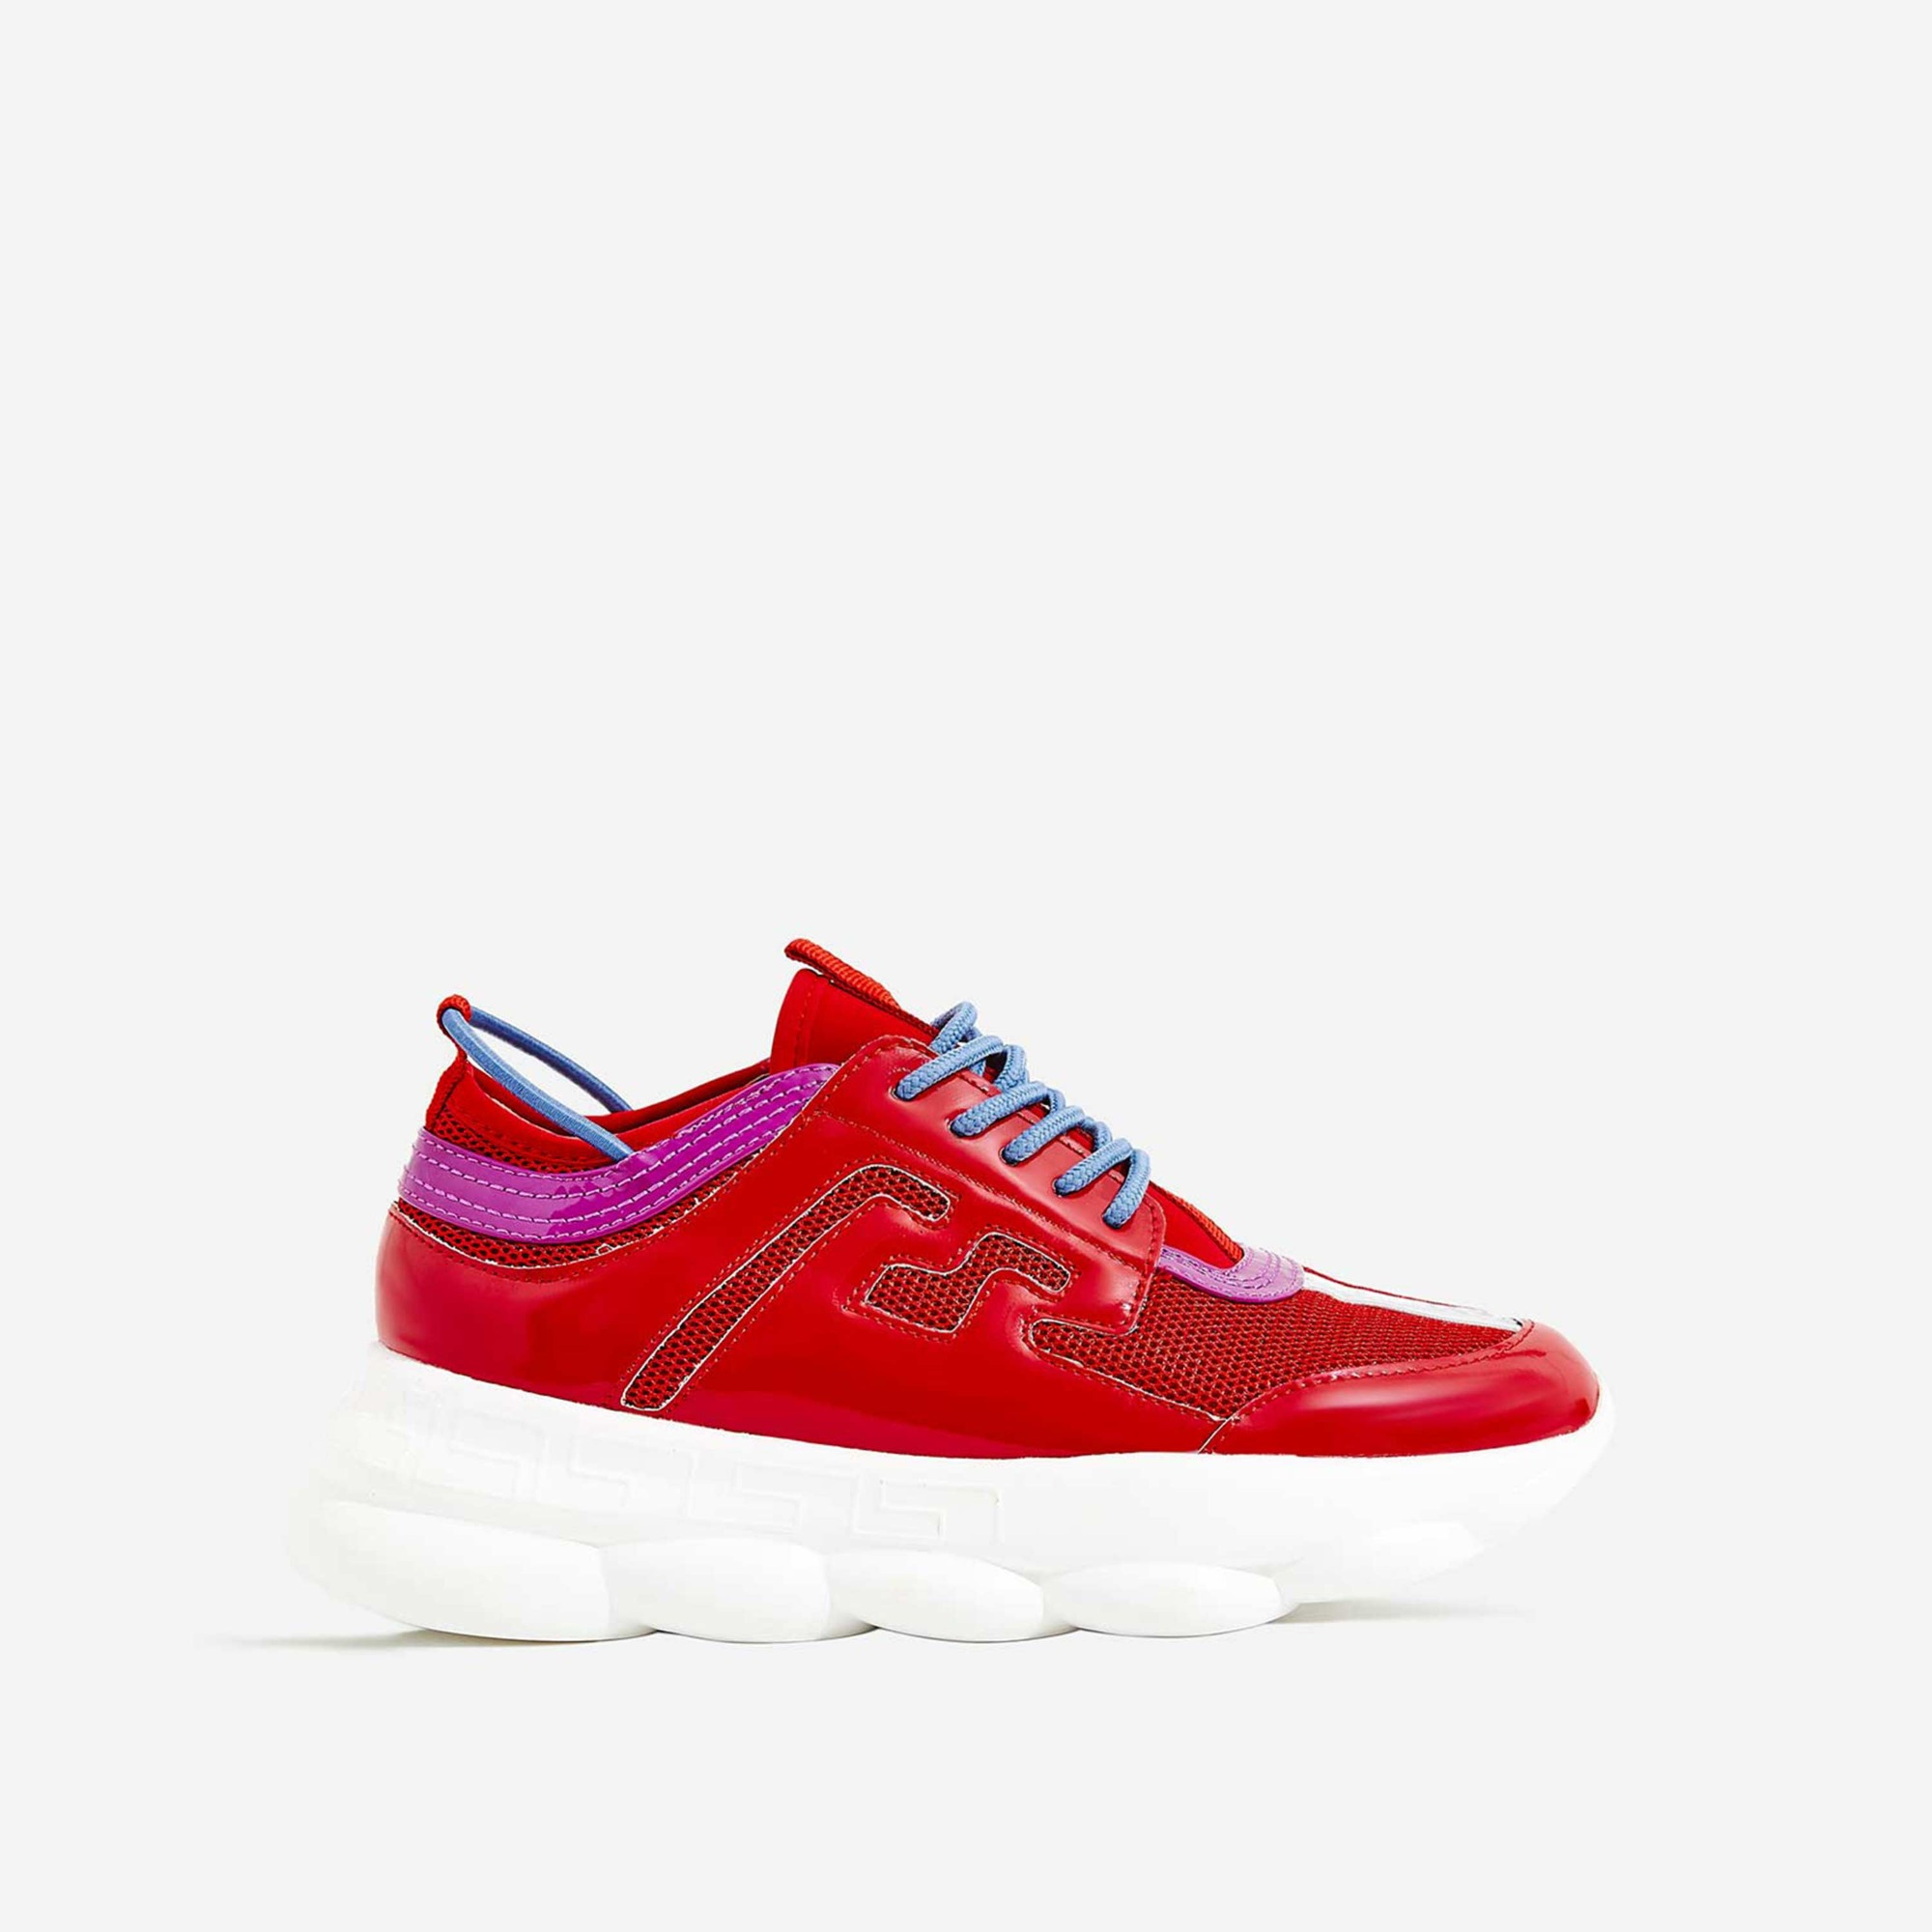 Athena Chunky Sole Sneaker In Red